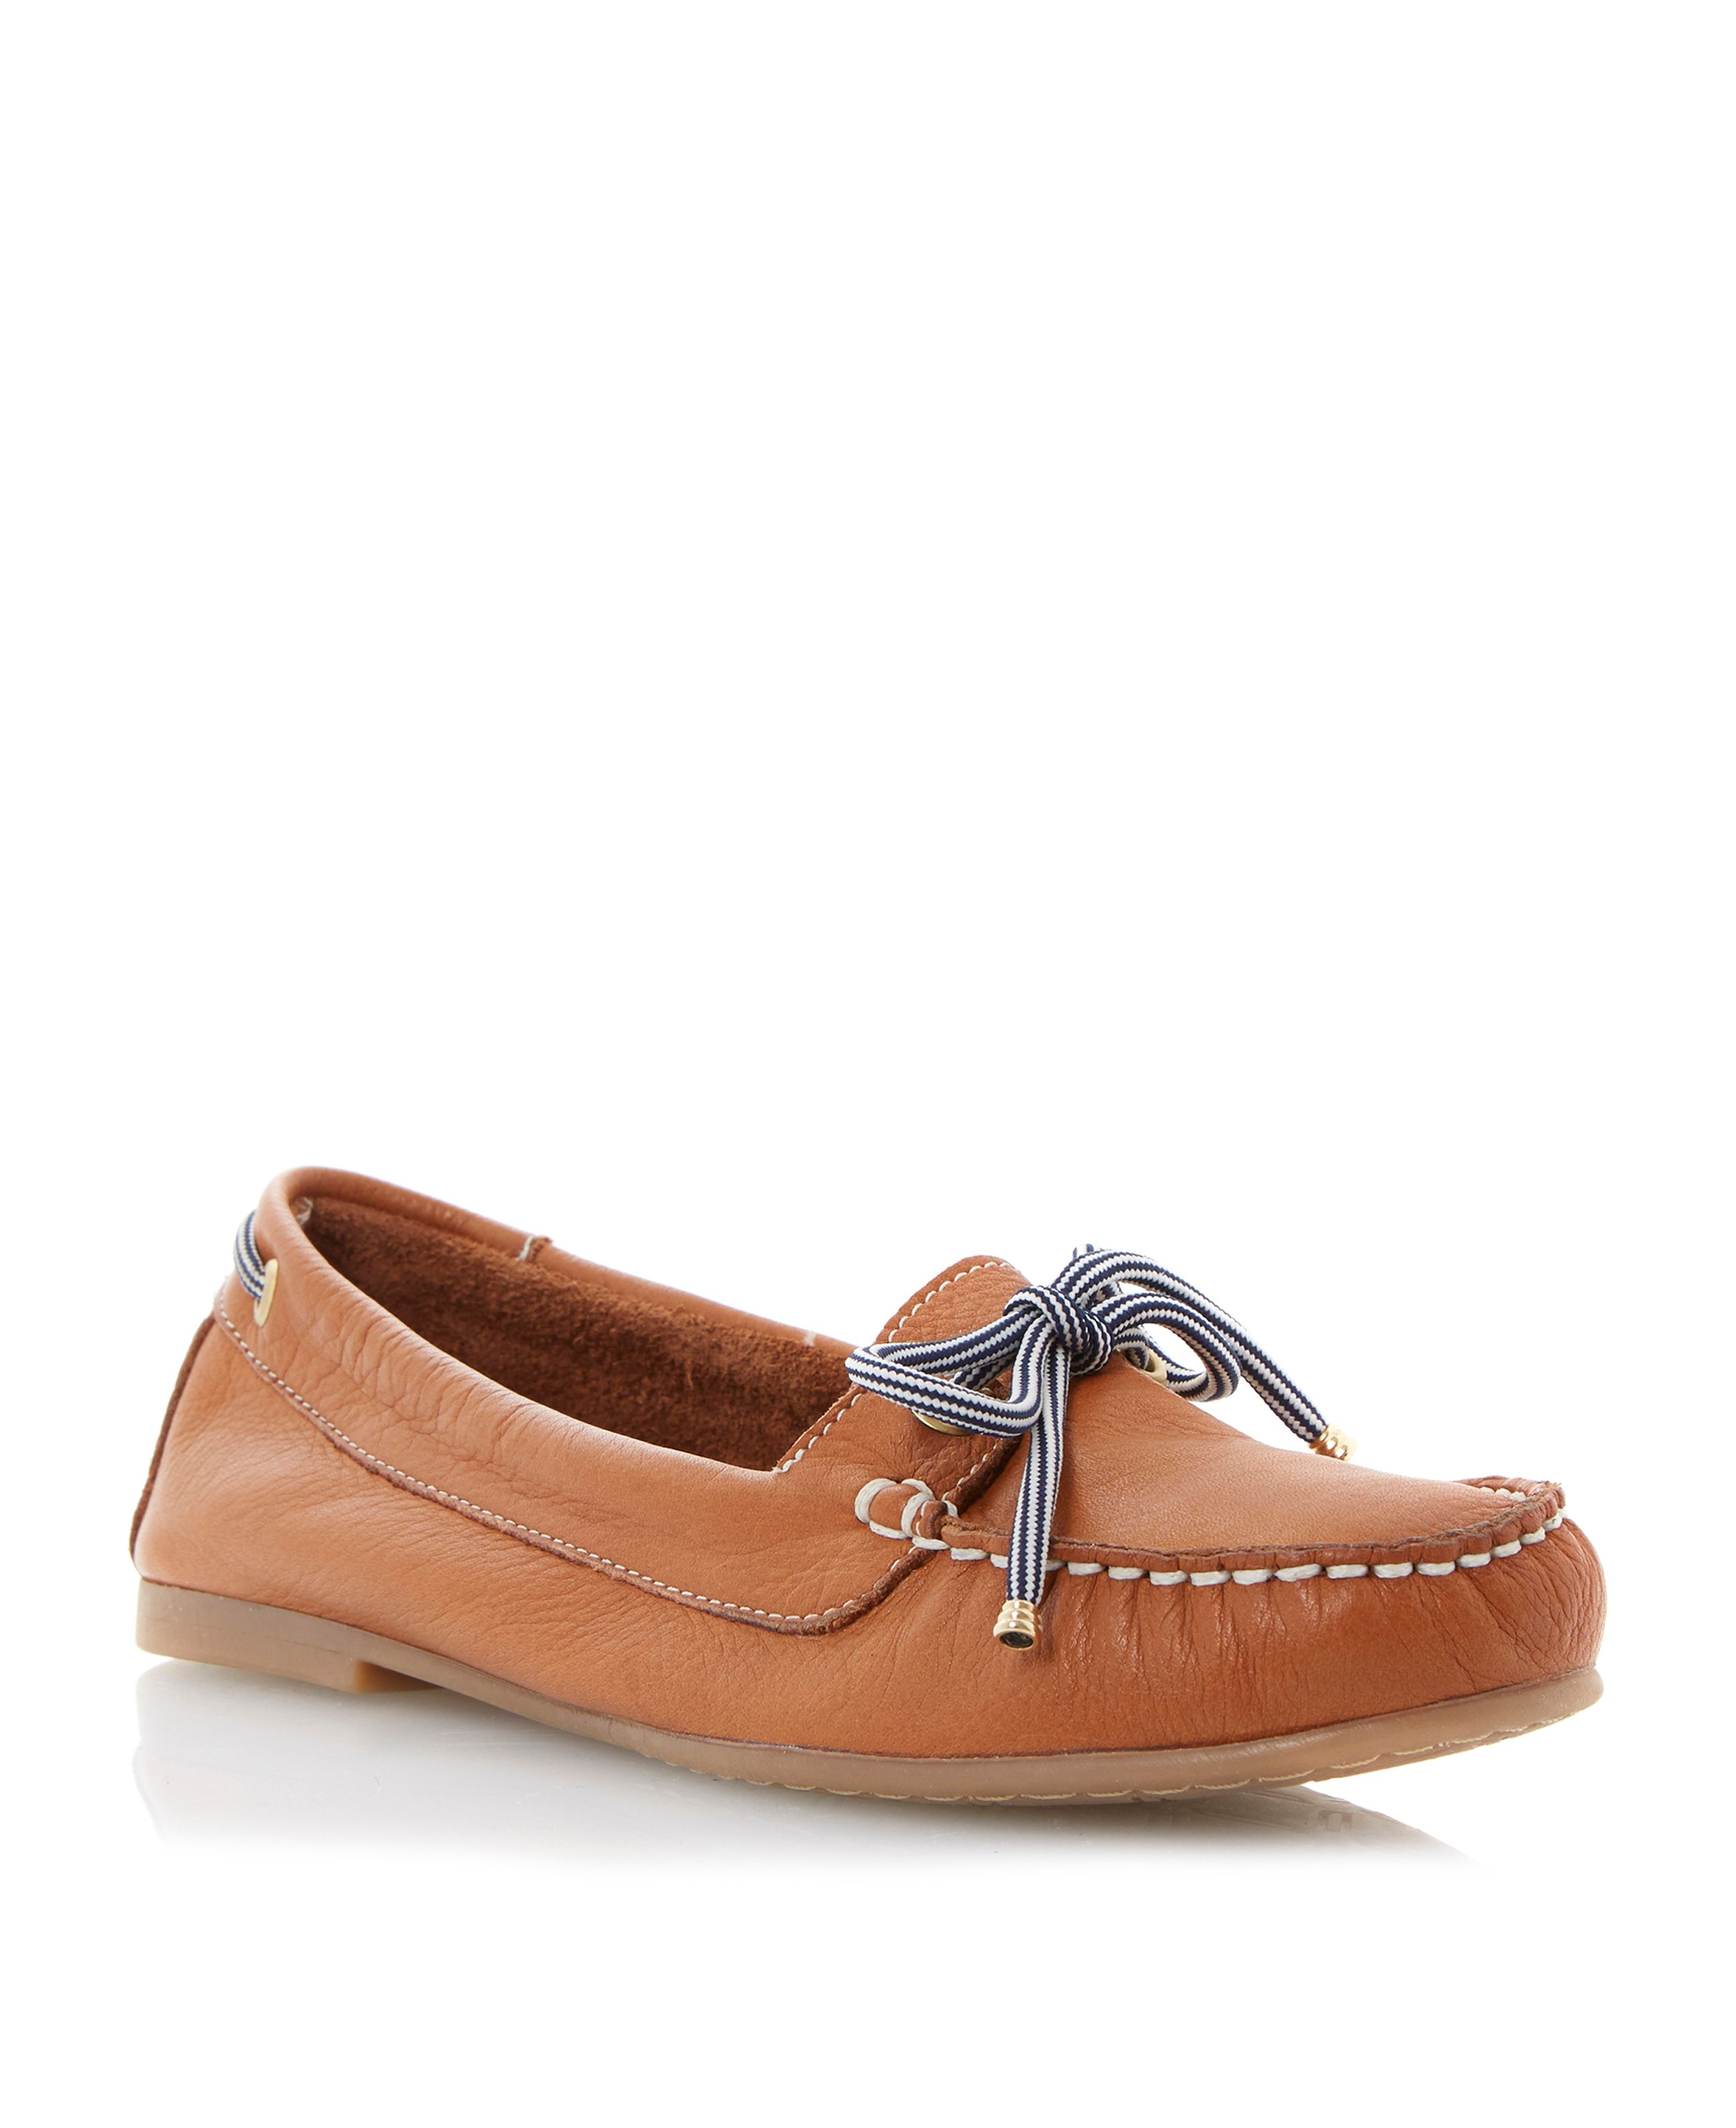 Lautical leather round toe flat deck shoes